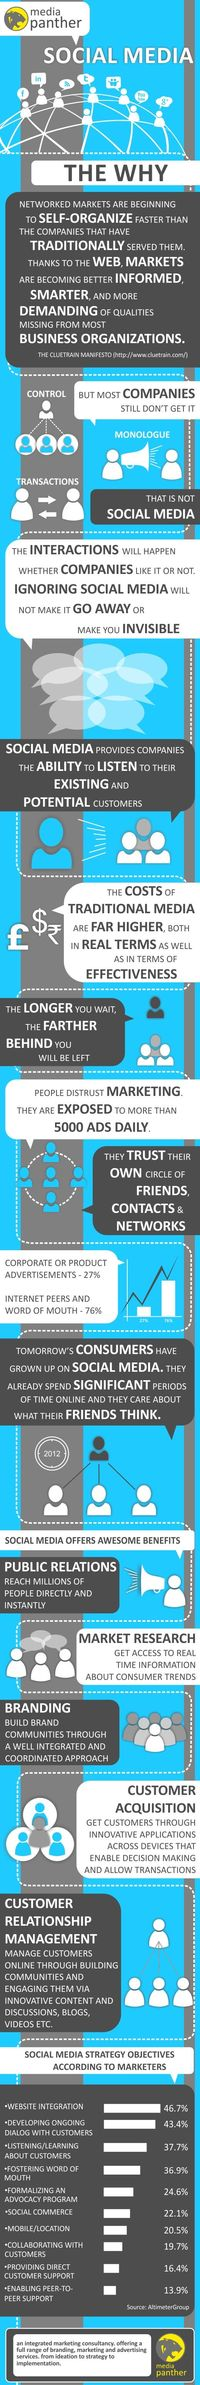 Social media - The why - Advertising, Branding, Marketing - Media Panther Blog #infographic (pinned by